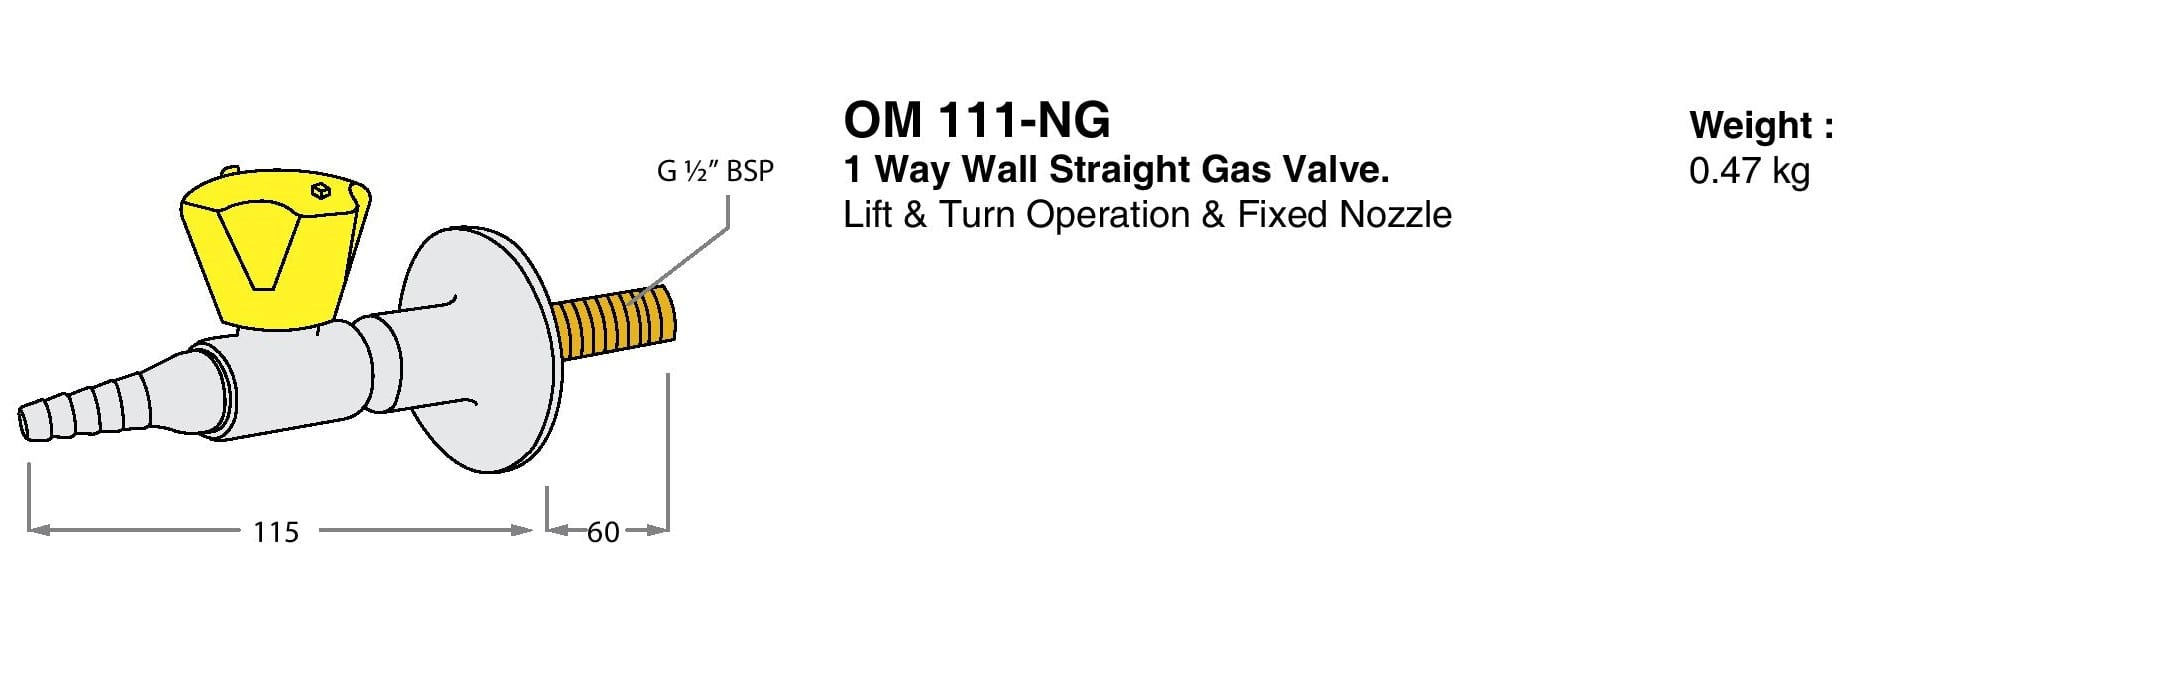 1 Way Wall Straight Gas Valve Drawings